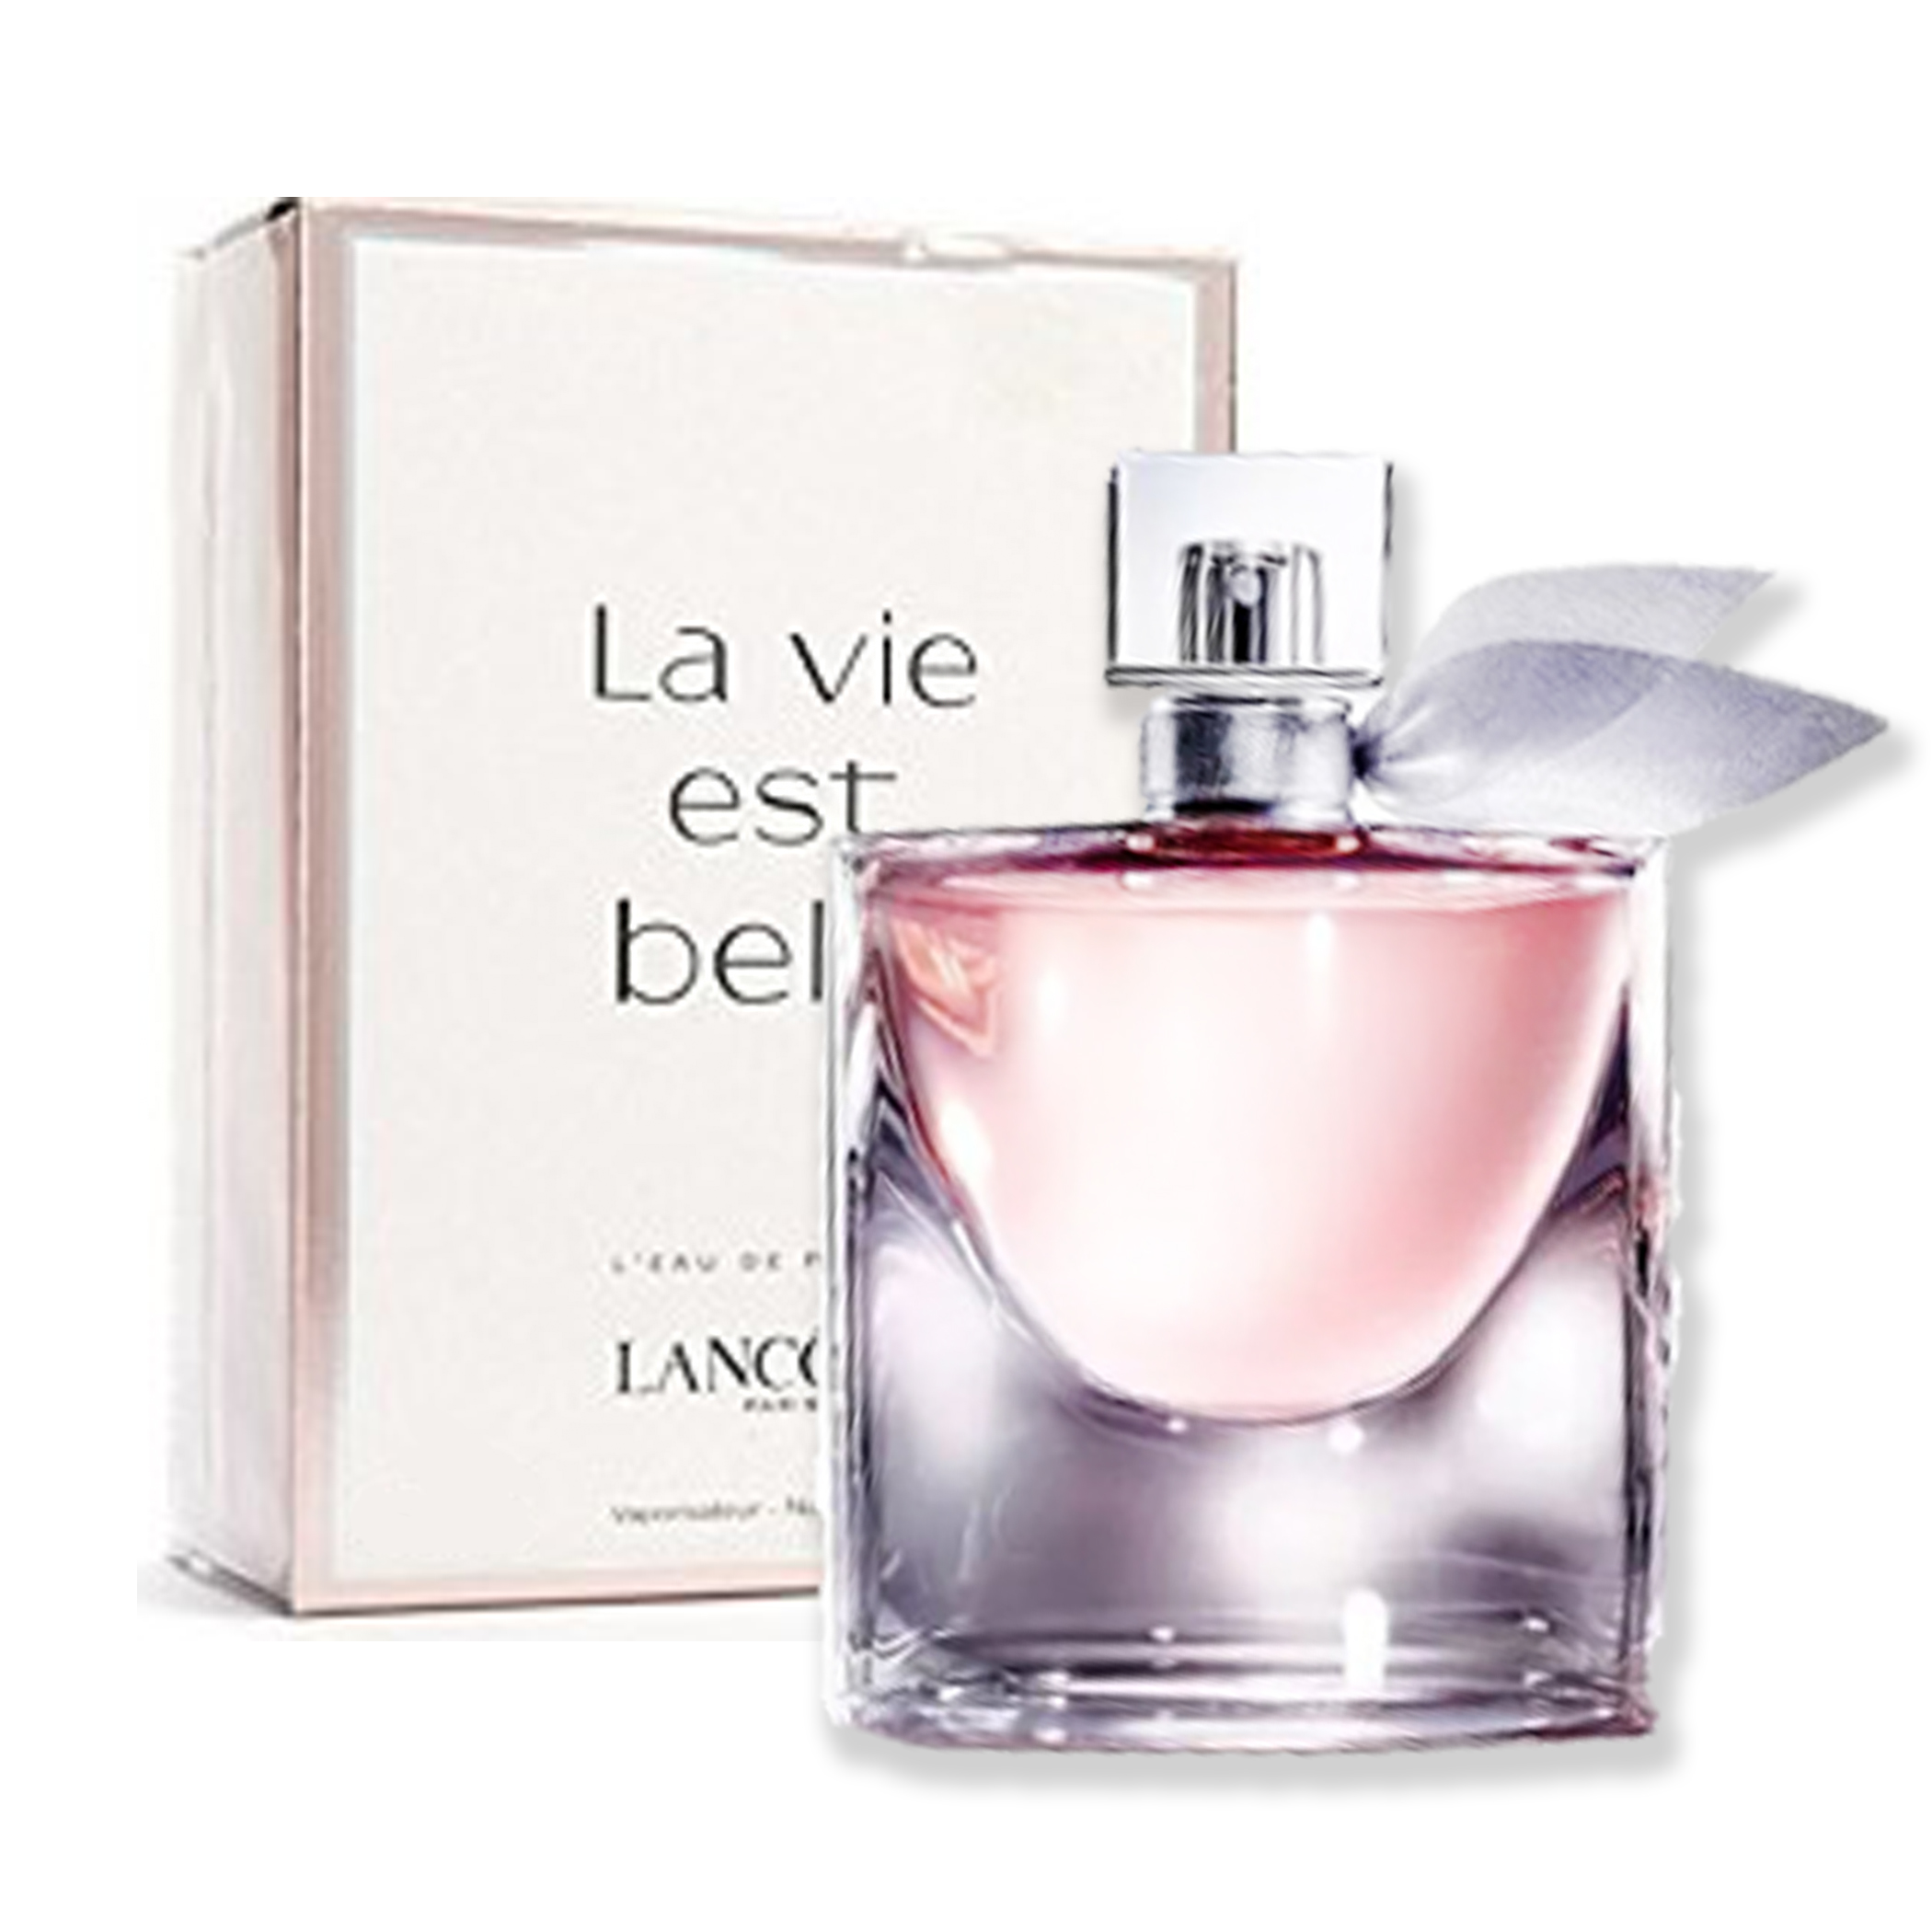 La De Lancome Eau Belle Parfum Spray Women1 Vie Oz For Est qzpUMVS